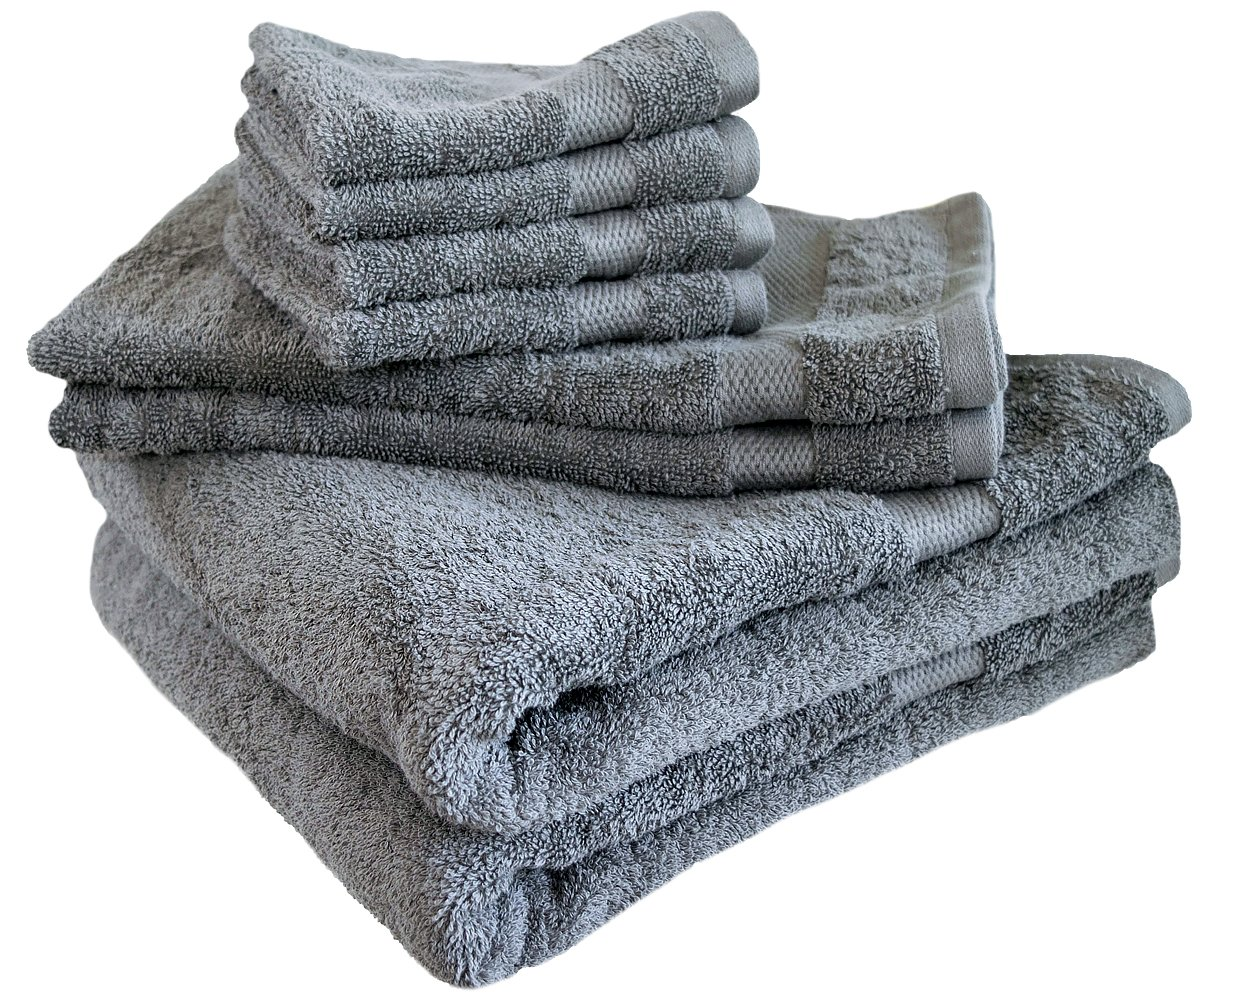 Cotton & Calm Exquisitely Plush and Soft 8 Piece Bath Towel Set, Grey - 2 Large Bath Towels, 2 Hand Towels, and 4 Washcloths - Spa and Hotel Quality, Super Absorbent Luxury Bathroom Towels